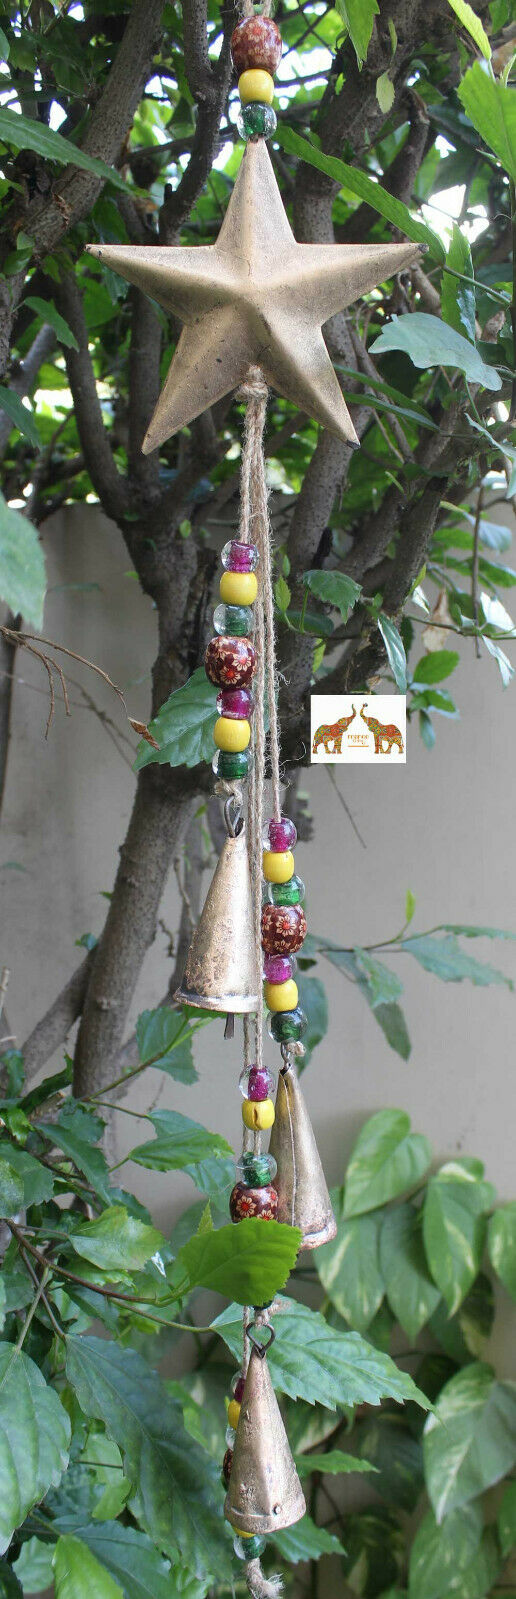 Handmade Star Moon Bell Wall Hanging String Decoration Indian Metal Crafts 72 cm